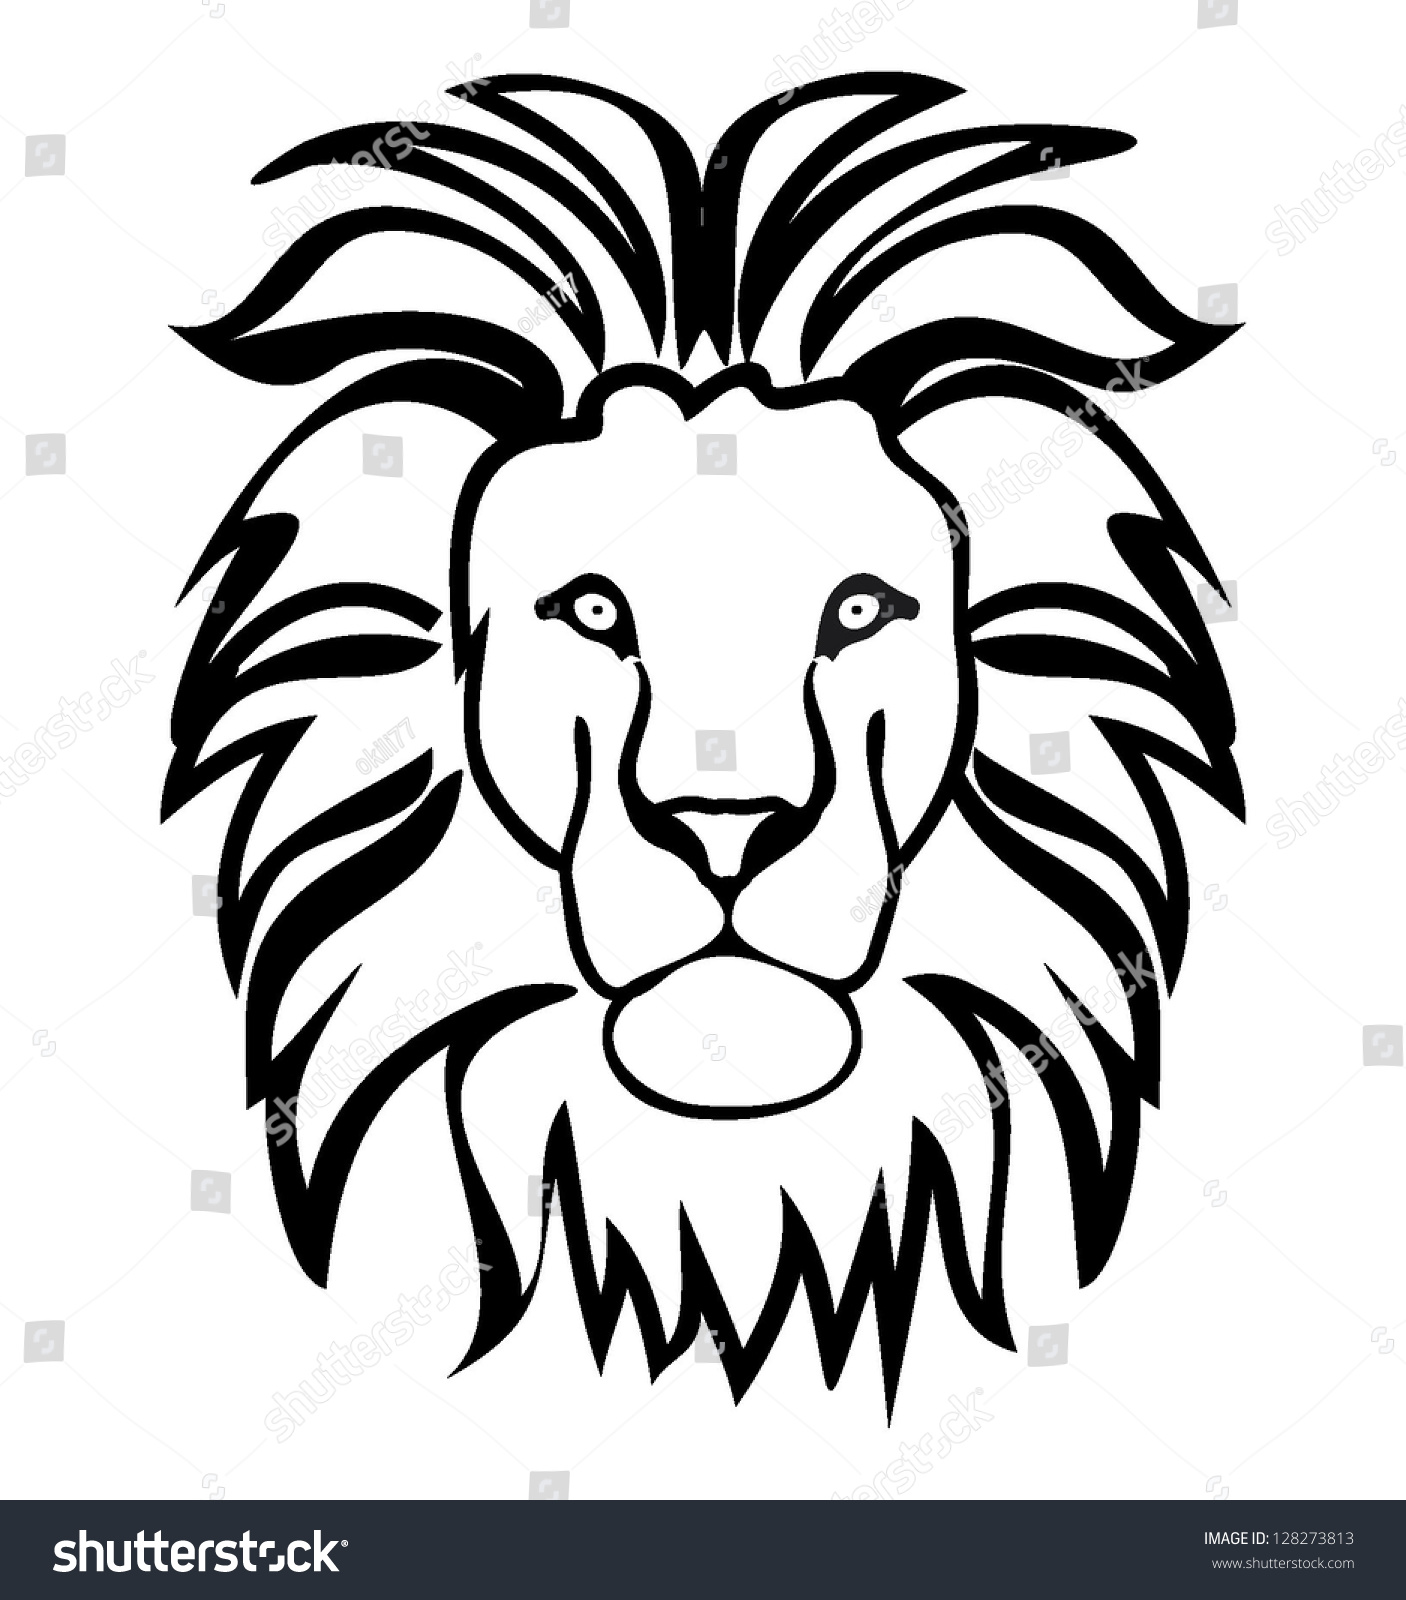 Lion symbol outline stock vector 128273813 shutterstock lion symbol outline biocorpaavc Gallery